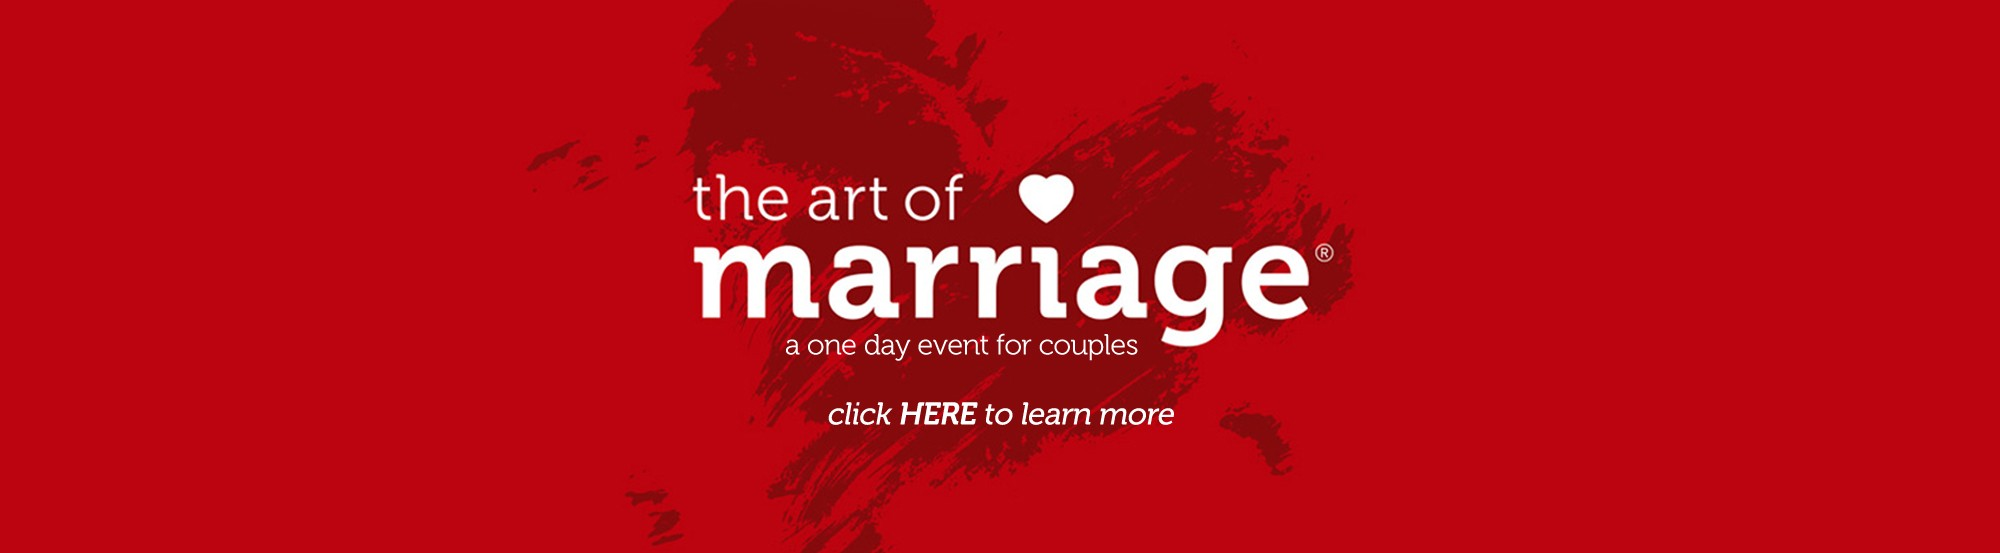 art of marriage main